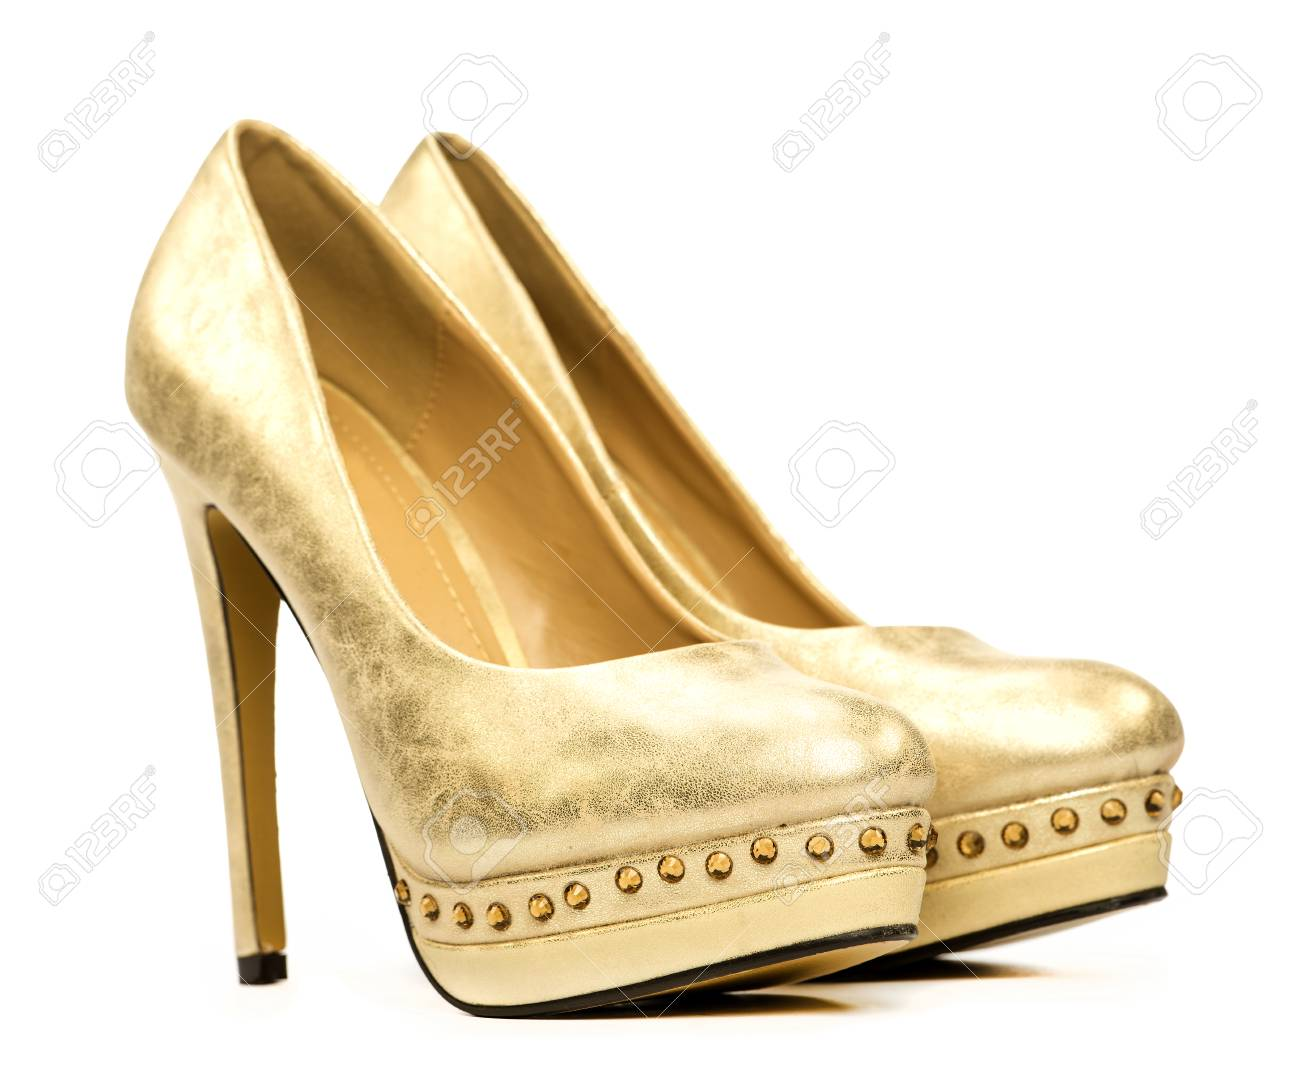 6647aa53eef Elegant platform high heels shoes in gold and with rhinestone decoration  Stock Photo - 30143921